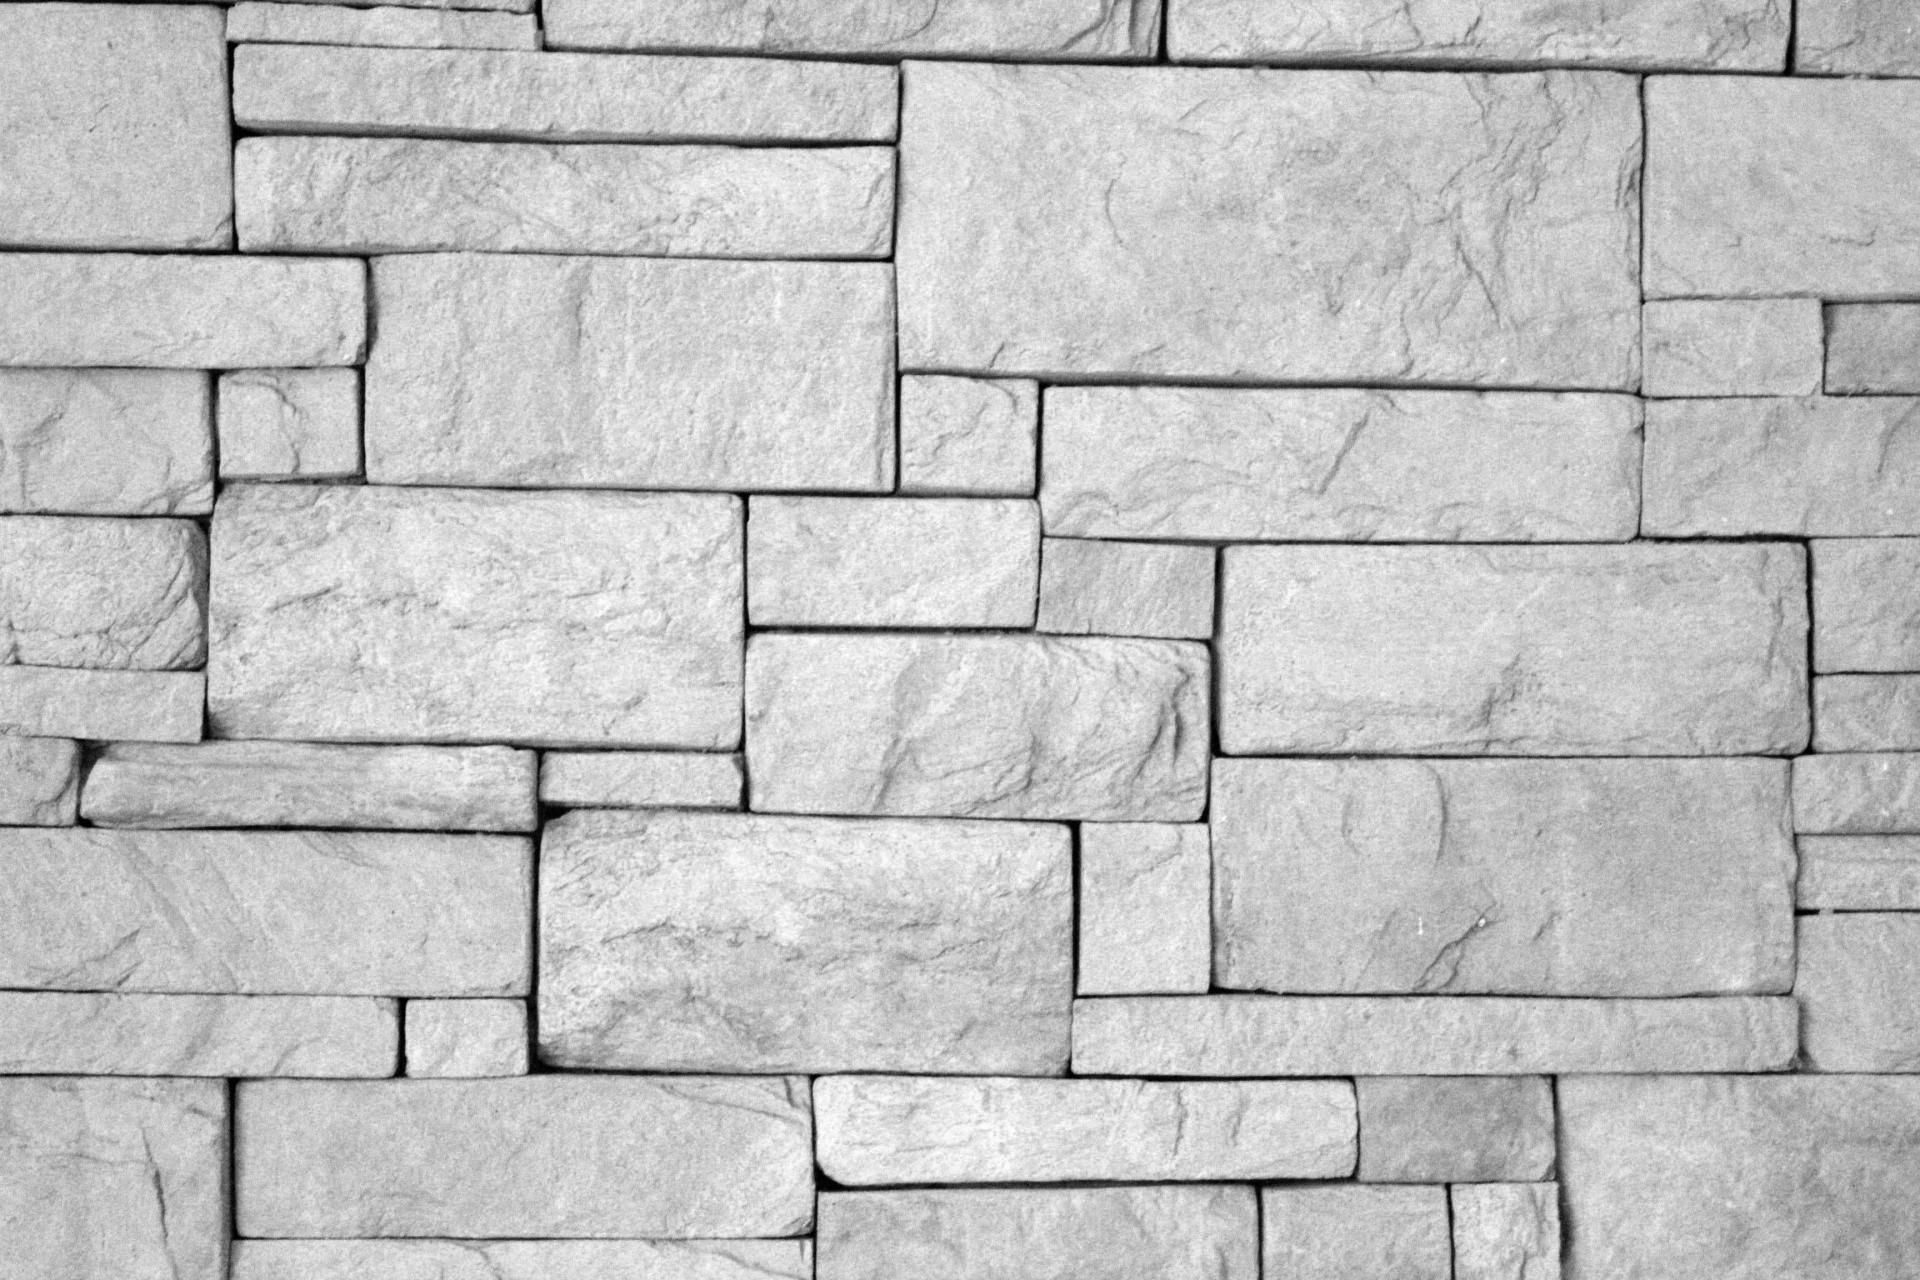 Black And White Brick Wall Free Stock Photo